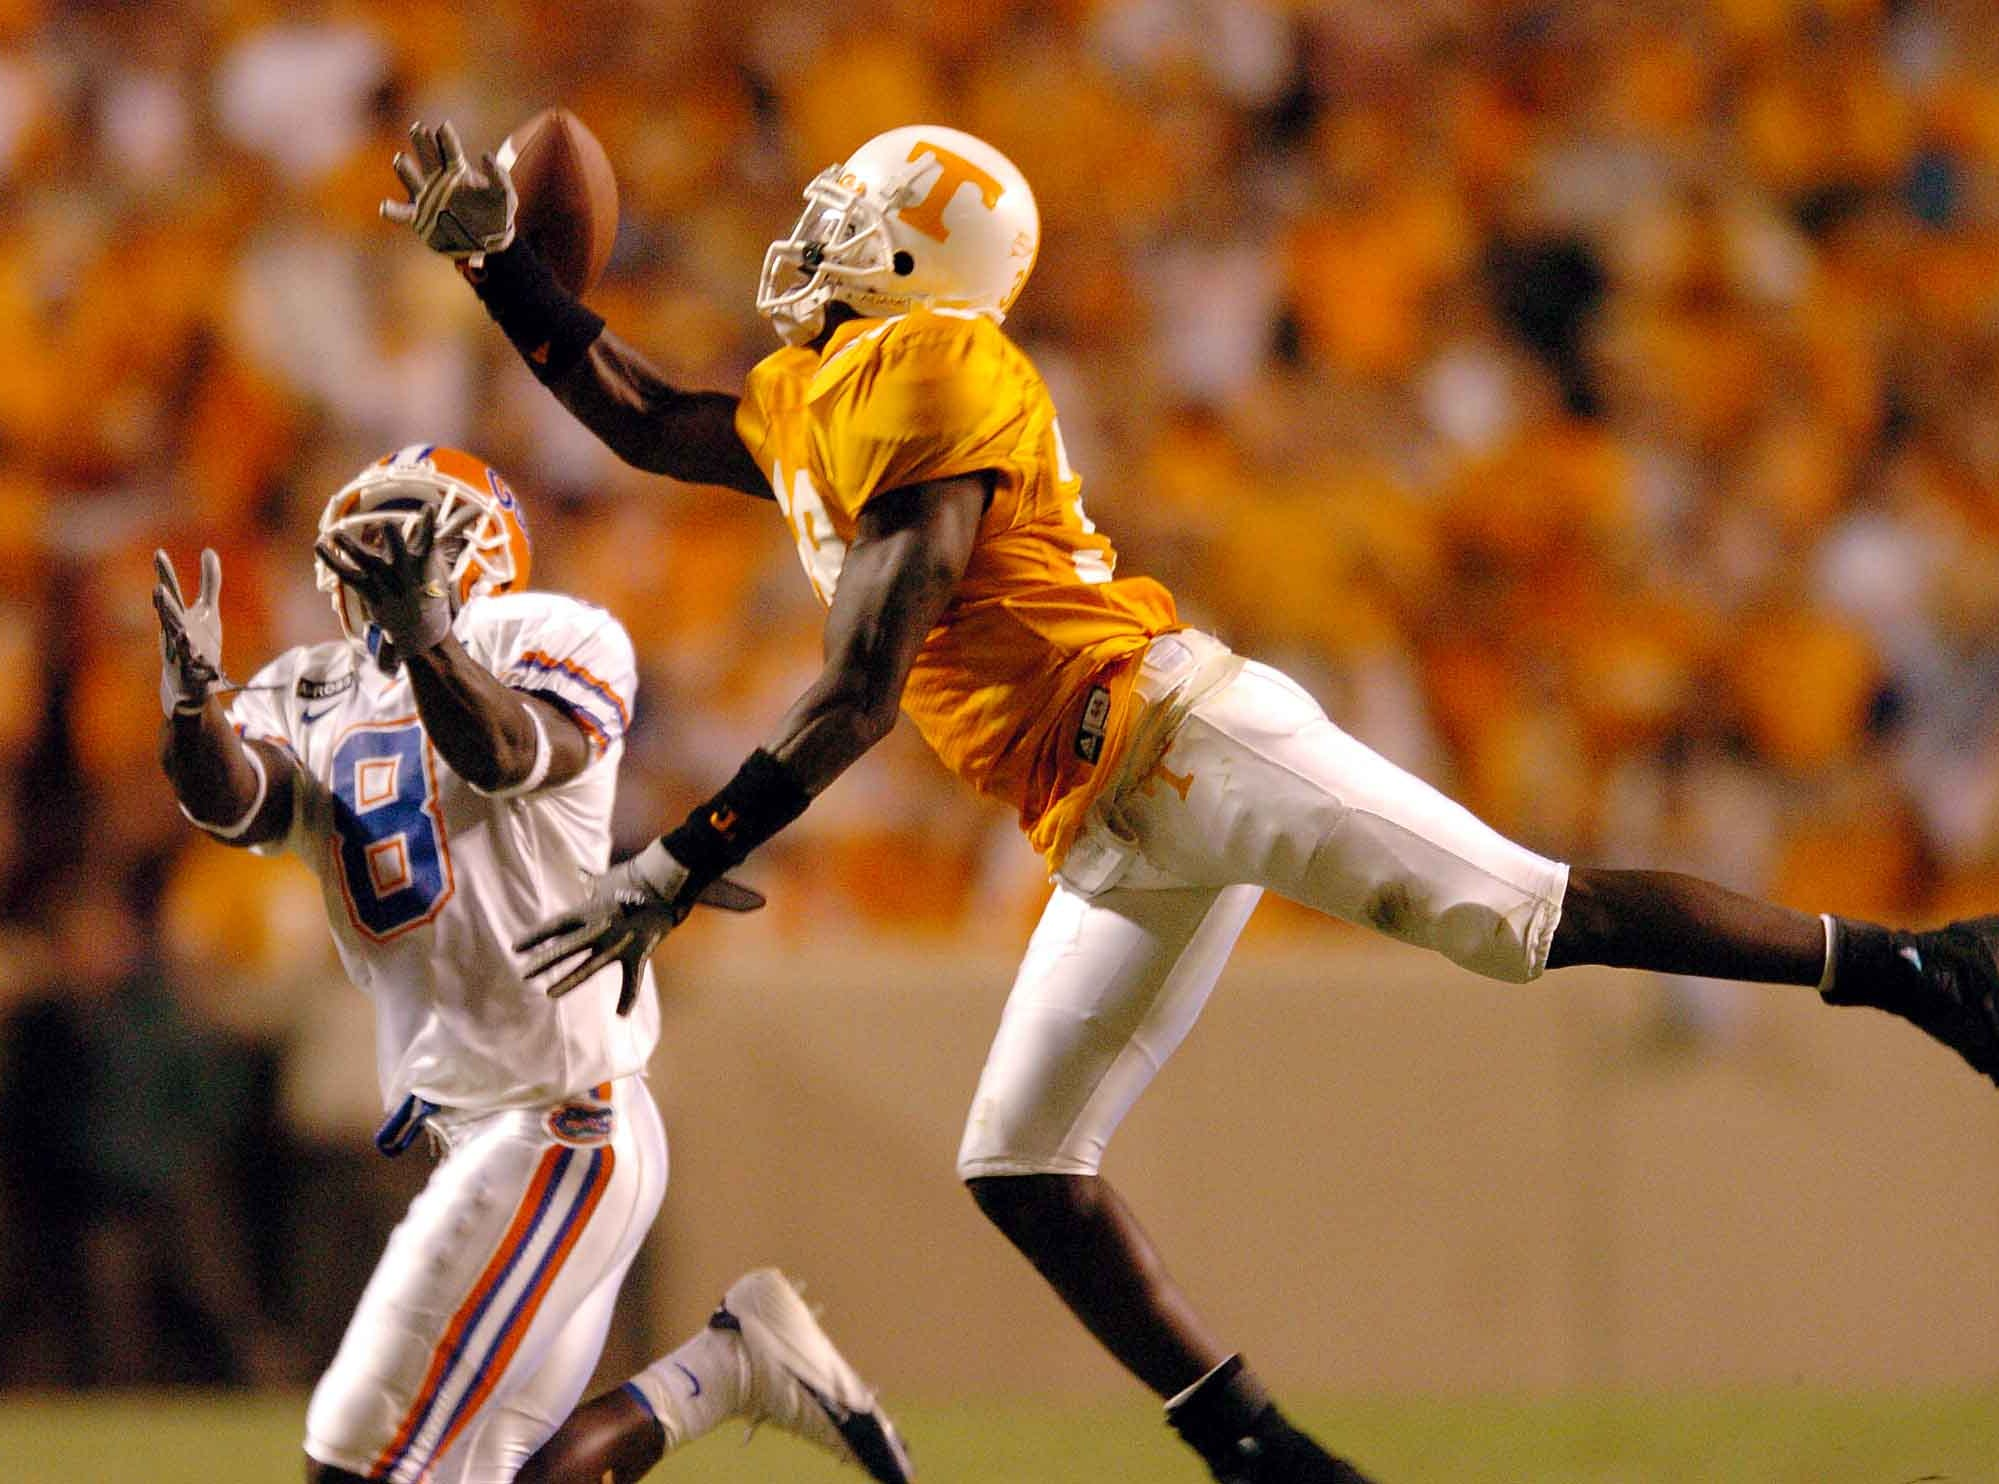 Tennessee safety Brandon Johnson misses a pass that Florida wide receiver Chad Jackson catches for a 81-yard touchdown during the fourth quarter Saturday at Neyland Stadium.     9/18/2004